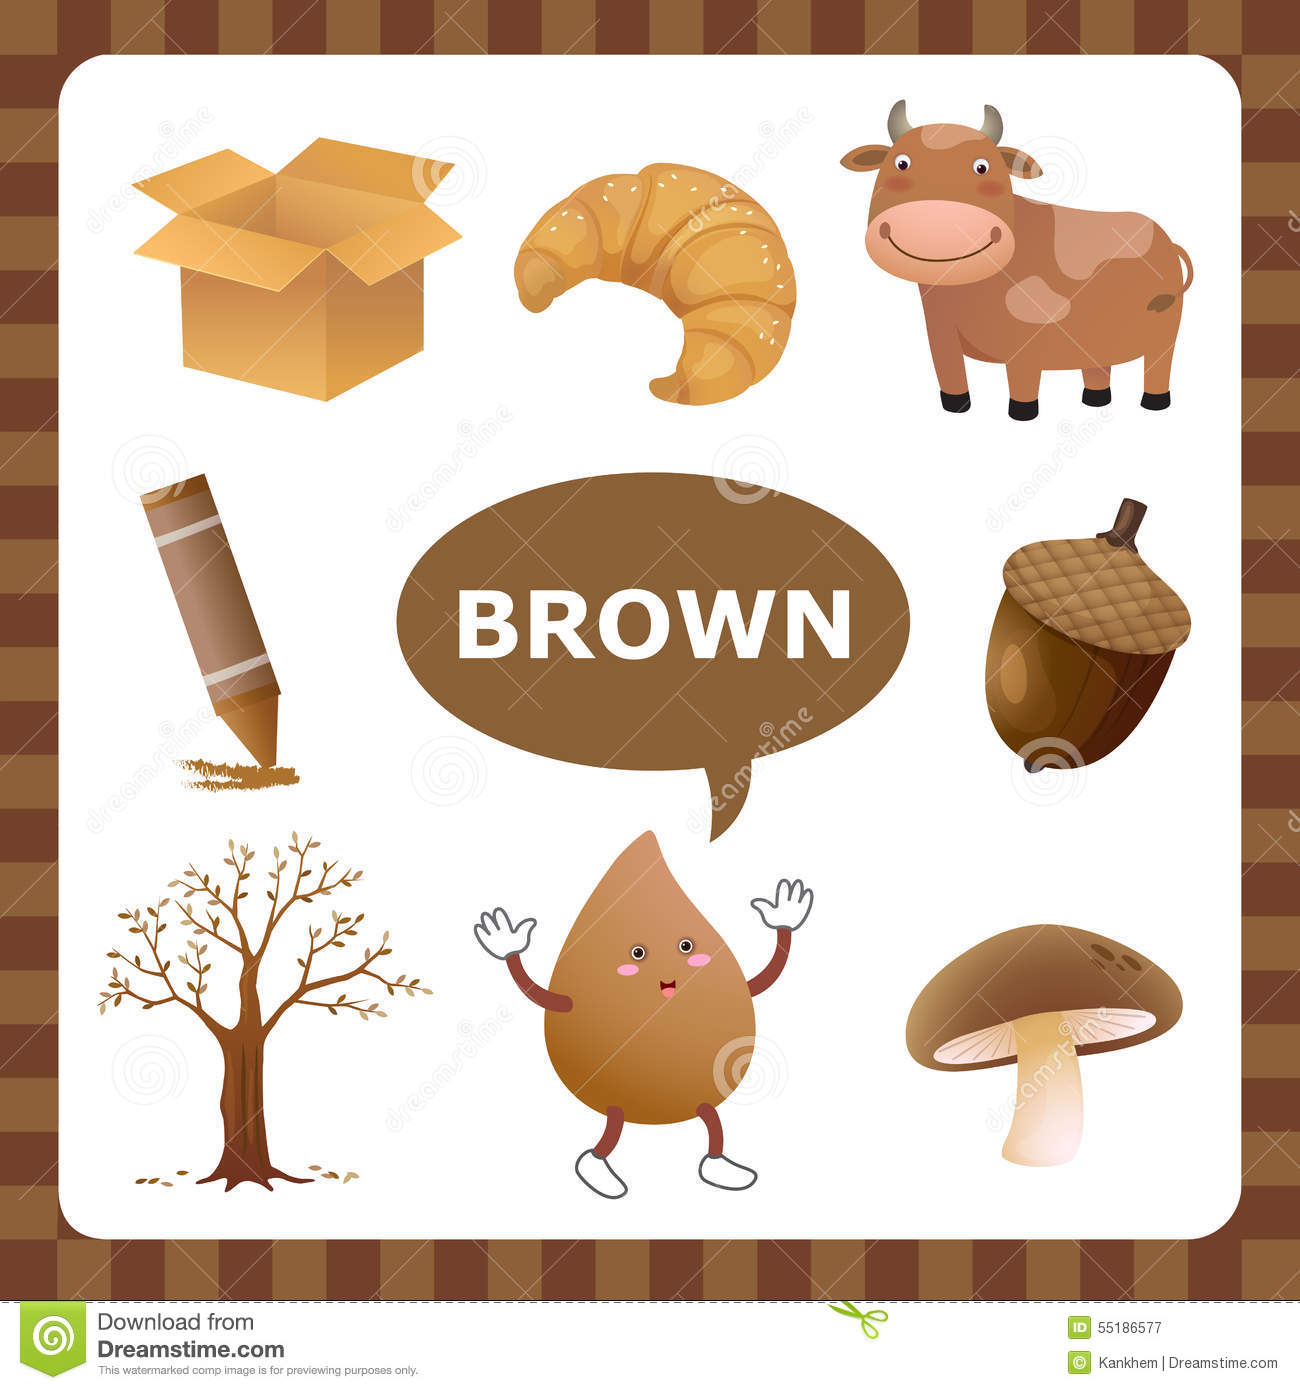 Brown Objects Clipart 3 Clipart Station